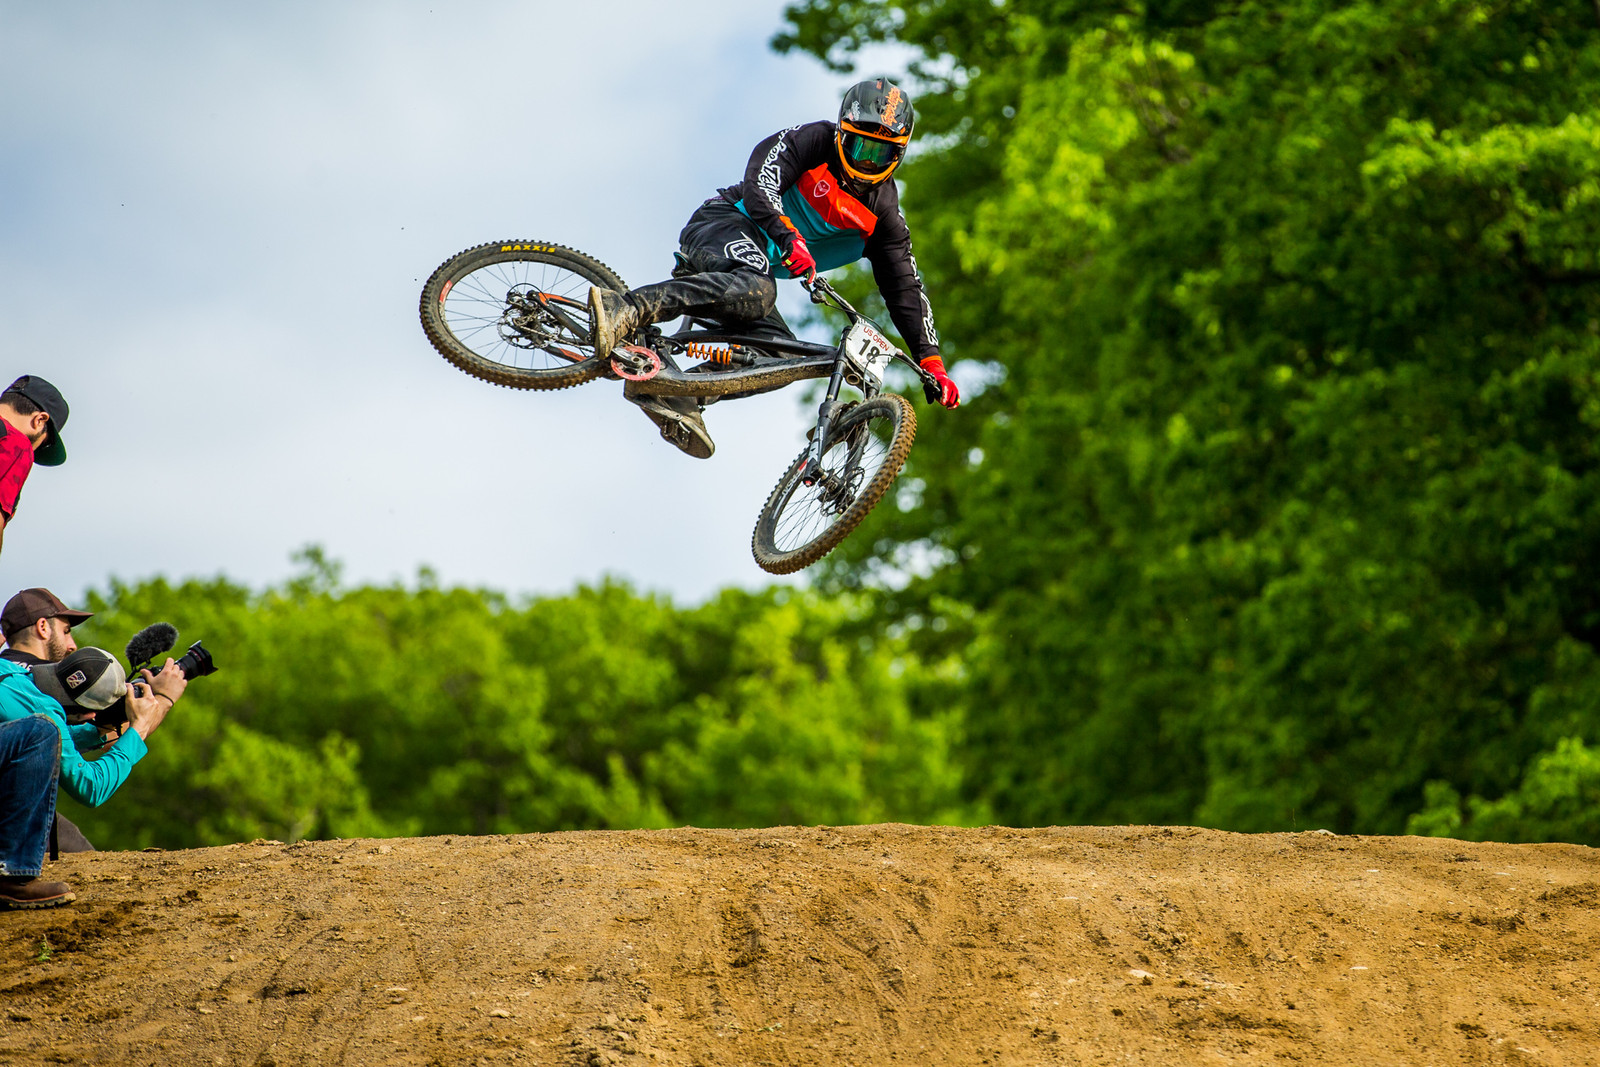 George Ryan - US Open Whip Off! - Mountain Biking Pictures - Vital MTB